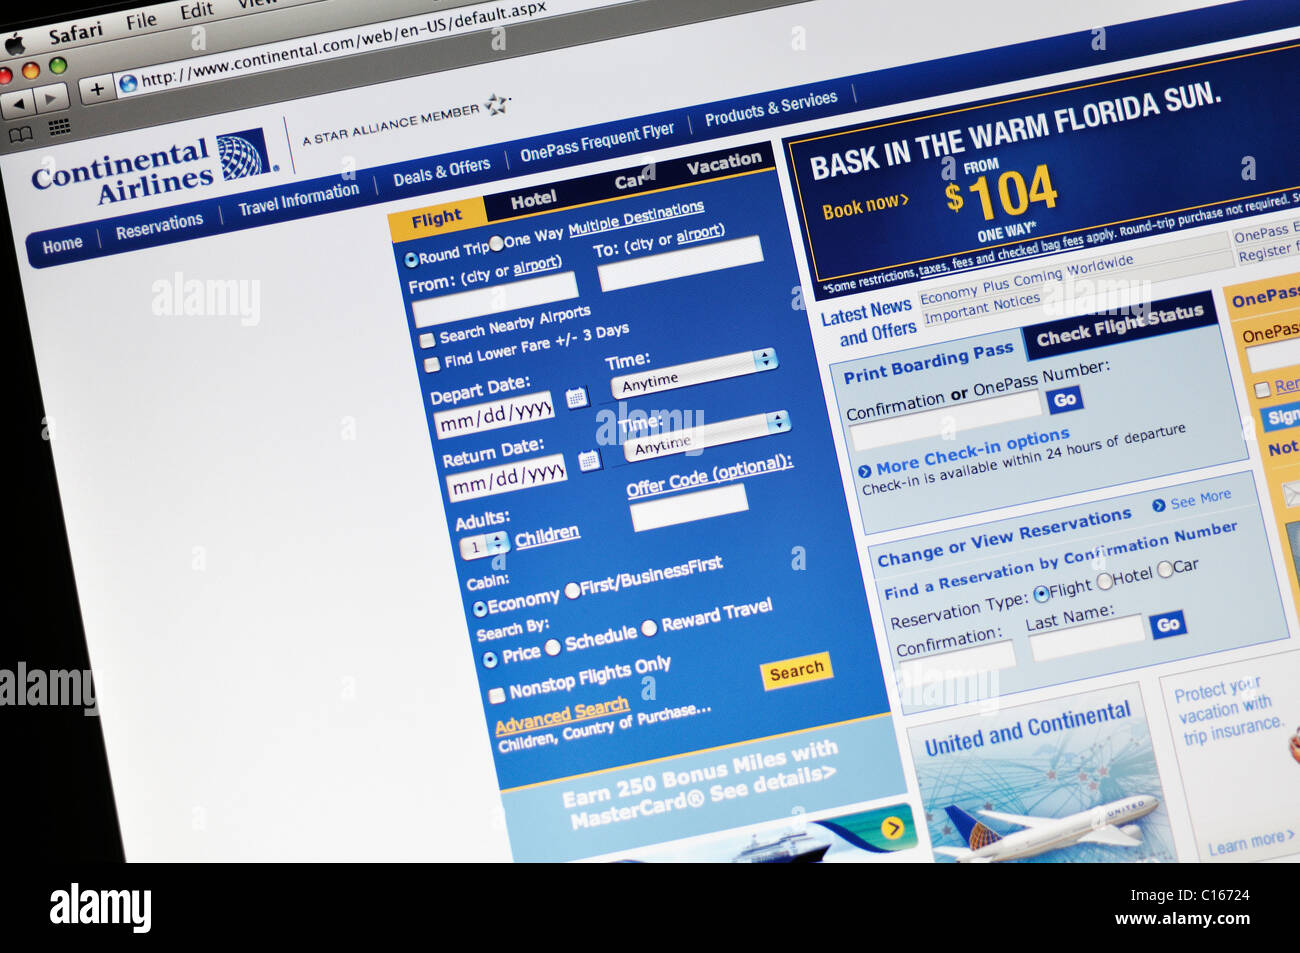 Continental Airlines Airlines website - Stock Image